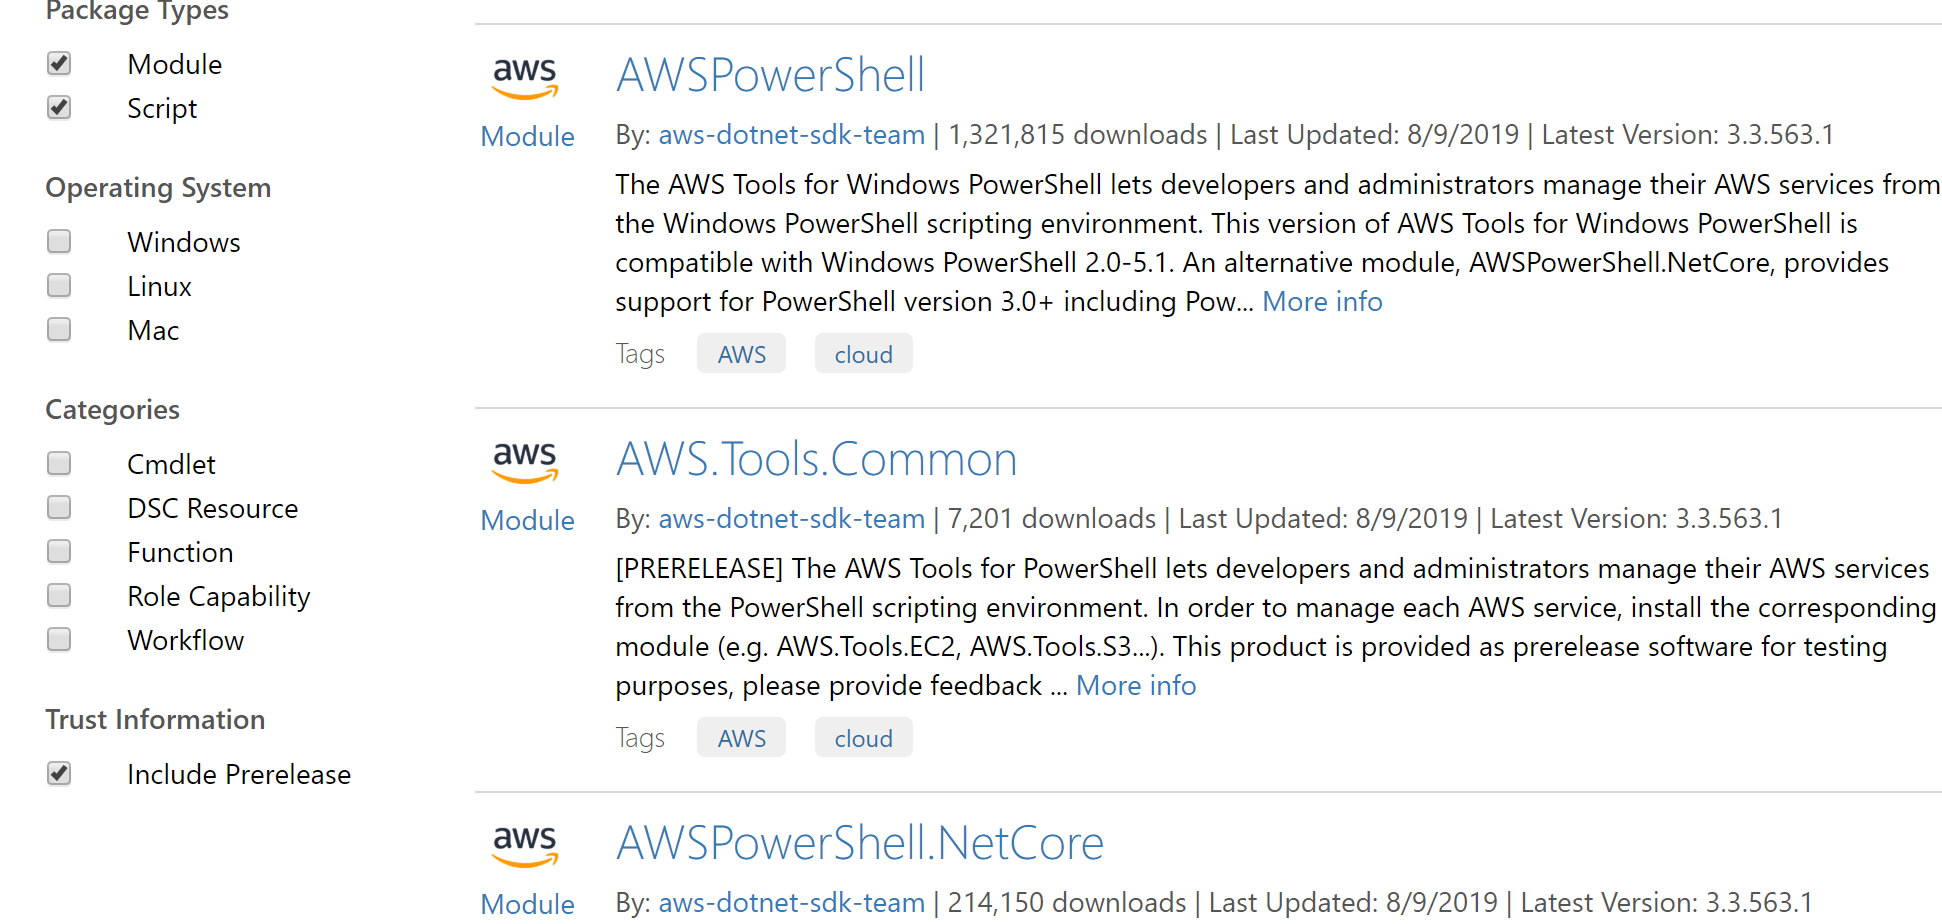 Amazon Releases a Preview of the New AWS Tools for PowerShell